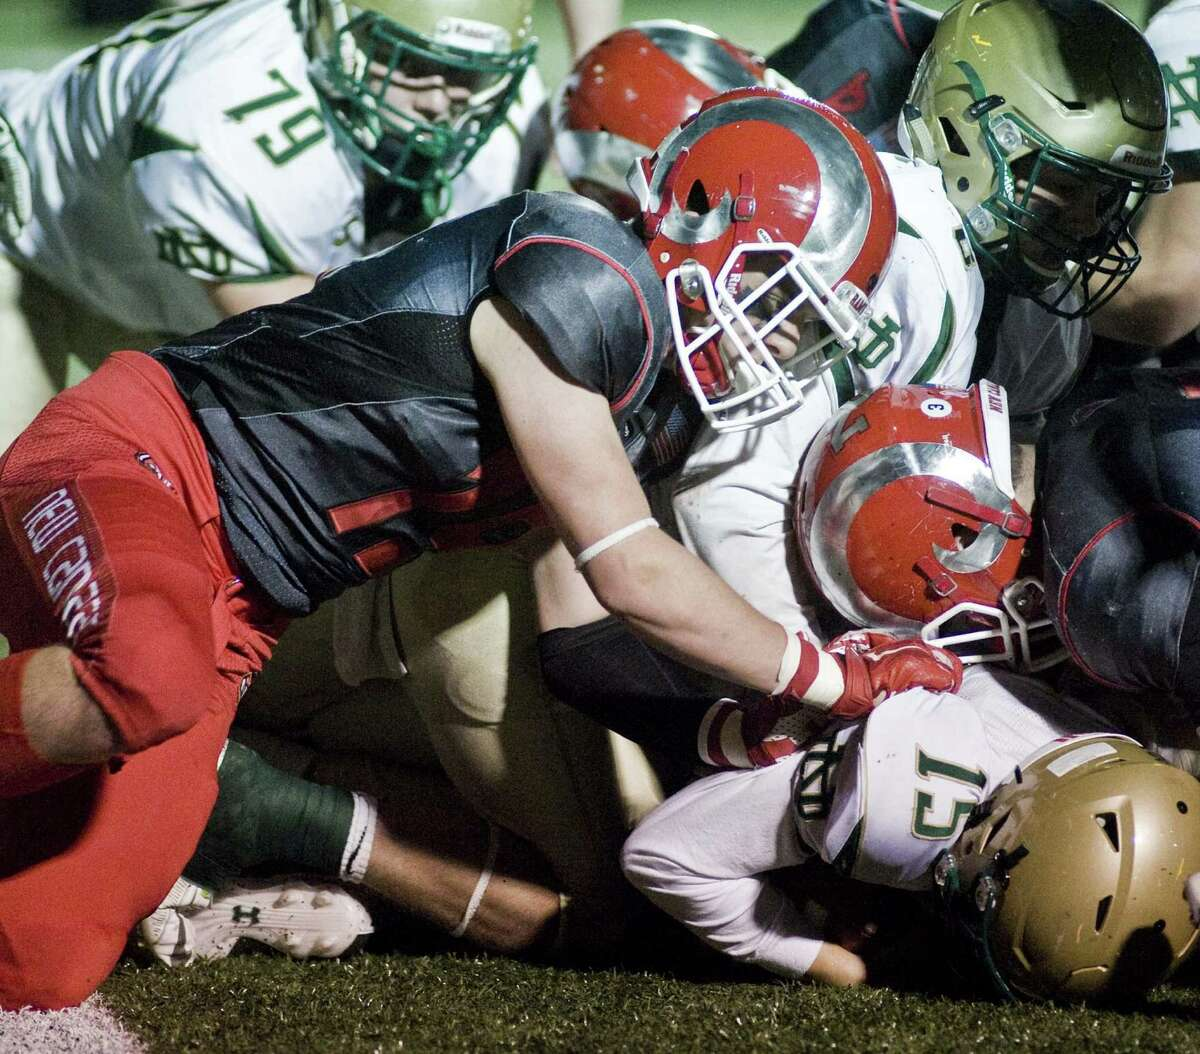 The New Canaan Rams' defense overshadowed their offense on Monday in the Class L semifinal win over Notre Dame-West Haven.